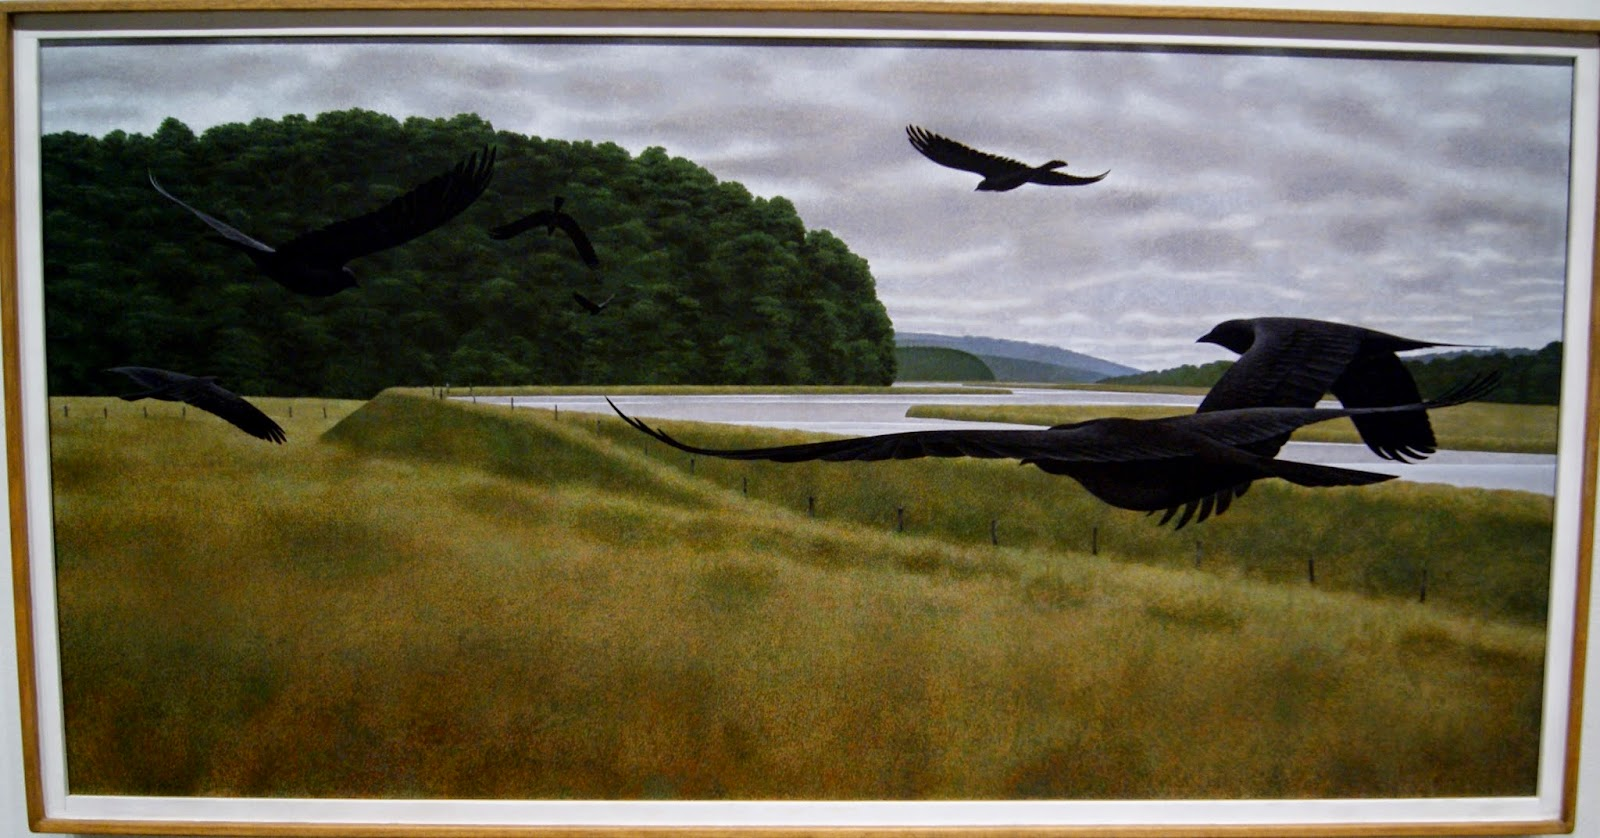 Alex Colville Exhibit at Art Gallery of Ontario in Toronto: Seven Crows, 1980, paintings, art, artmatters, culture,ontario, Canadian Artist, Painter, Canada